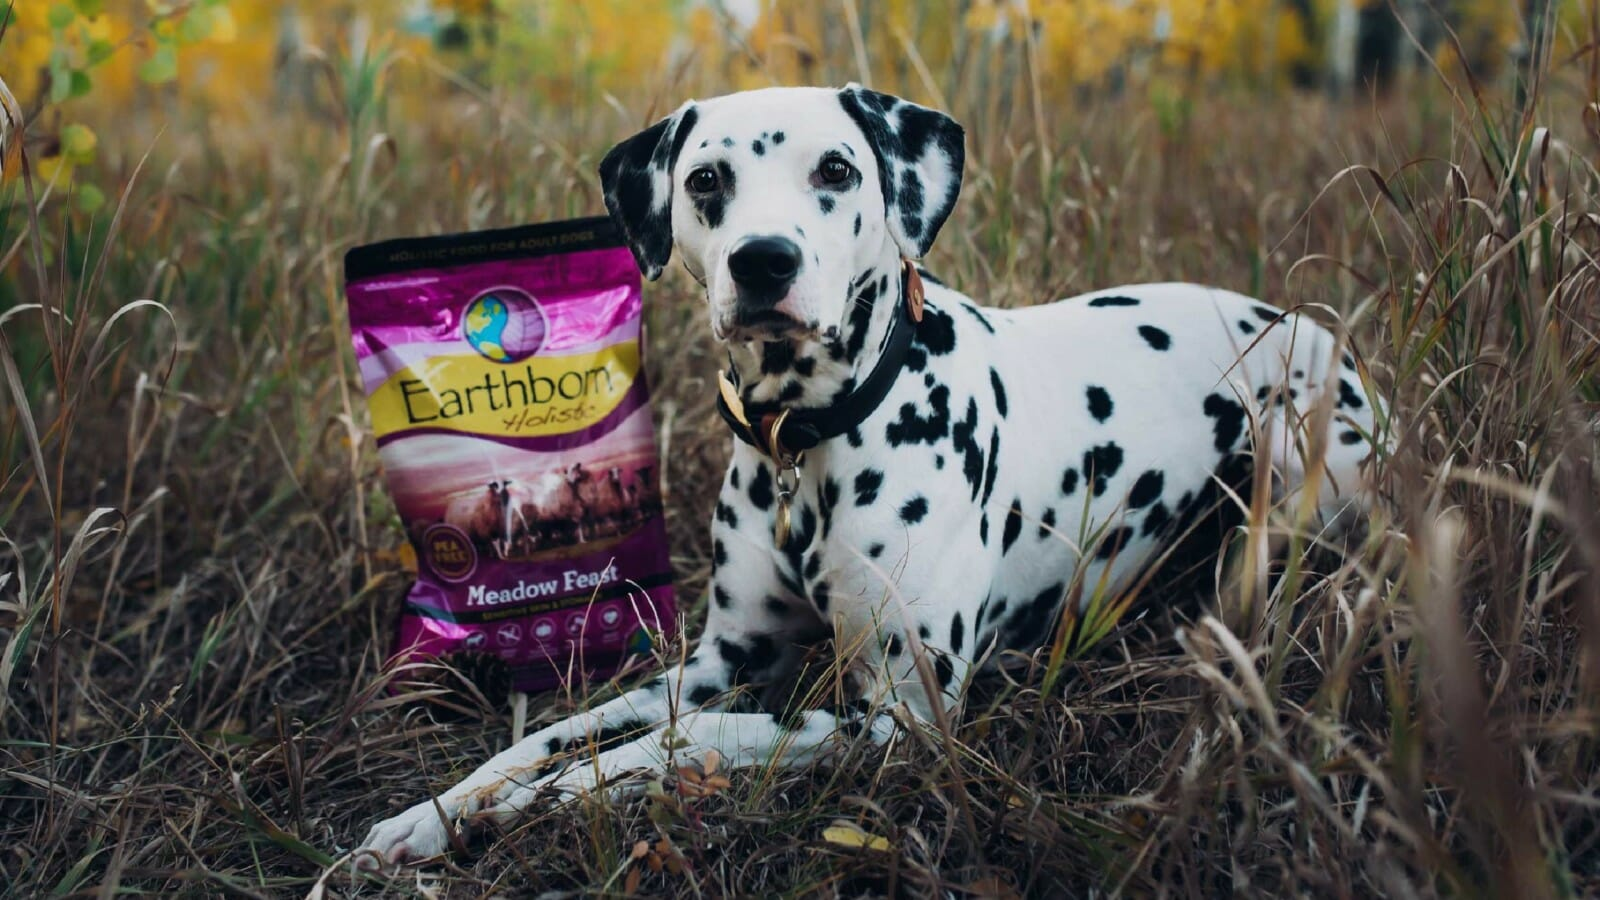 A dog lays next to a bag of Earthborn Holistic Meadow Feast